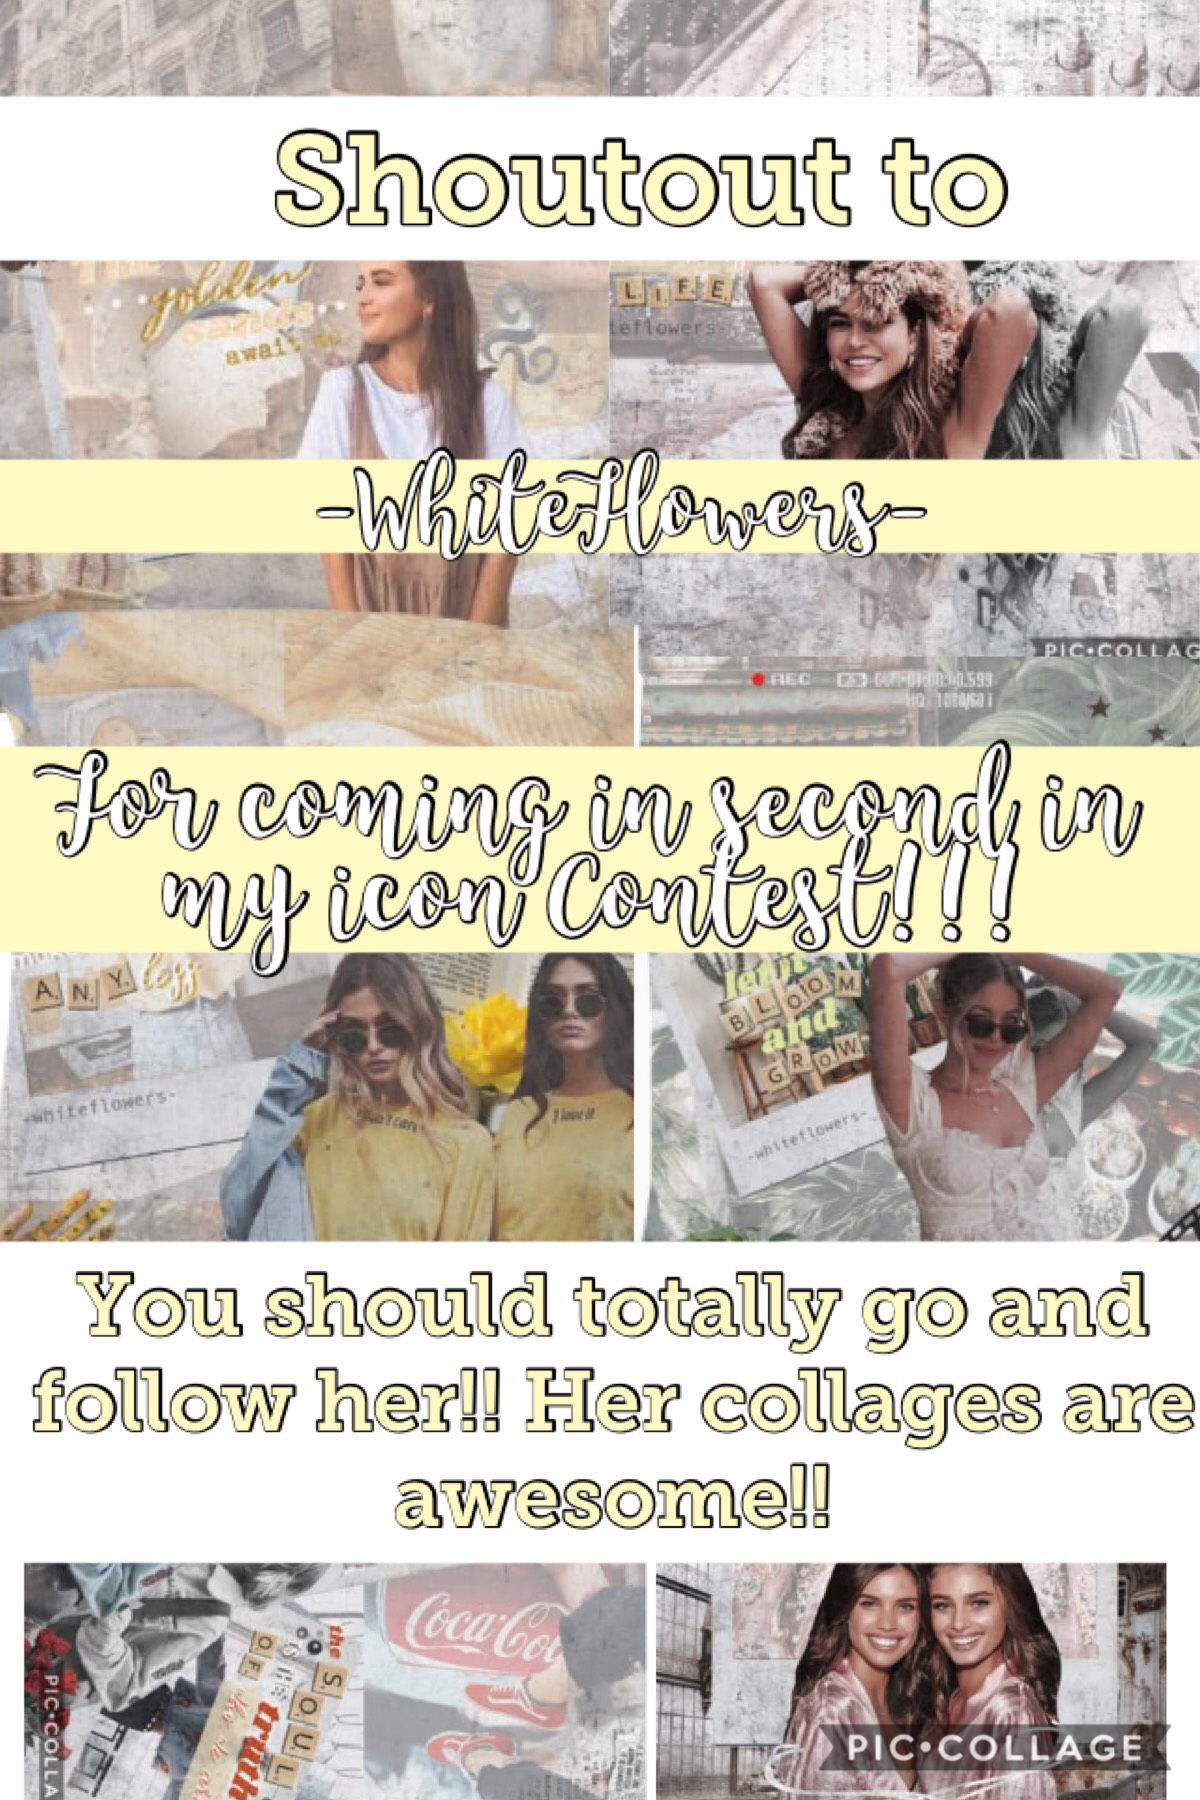 If you noticed I used her awesome collages to make the background of this collage!!